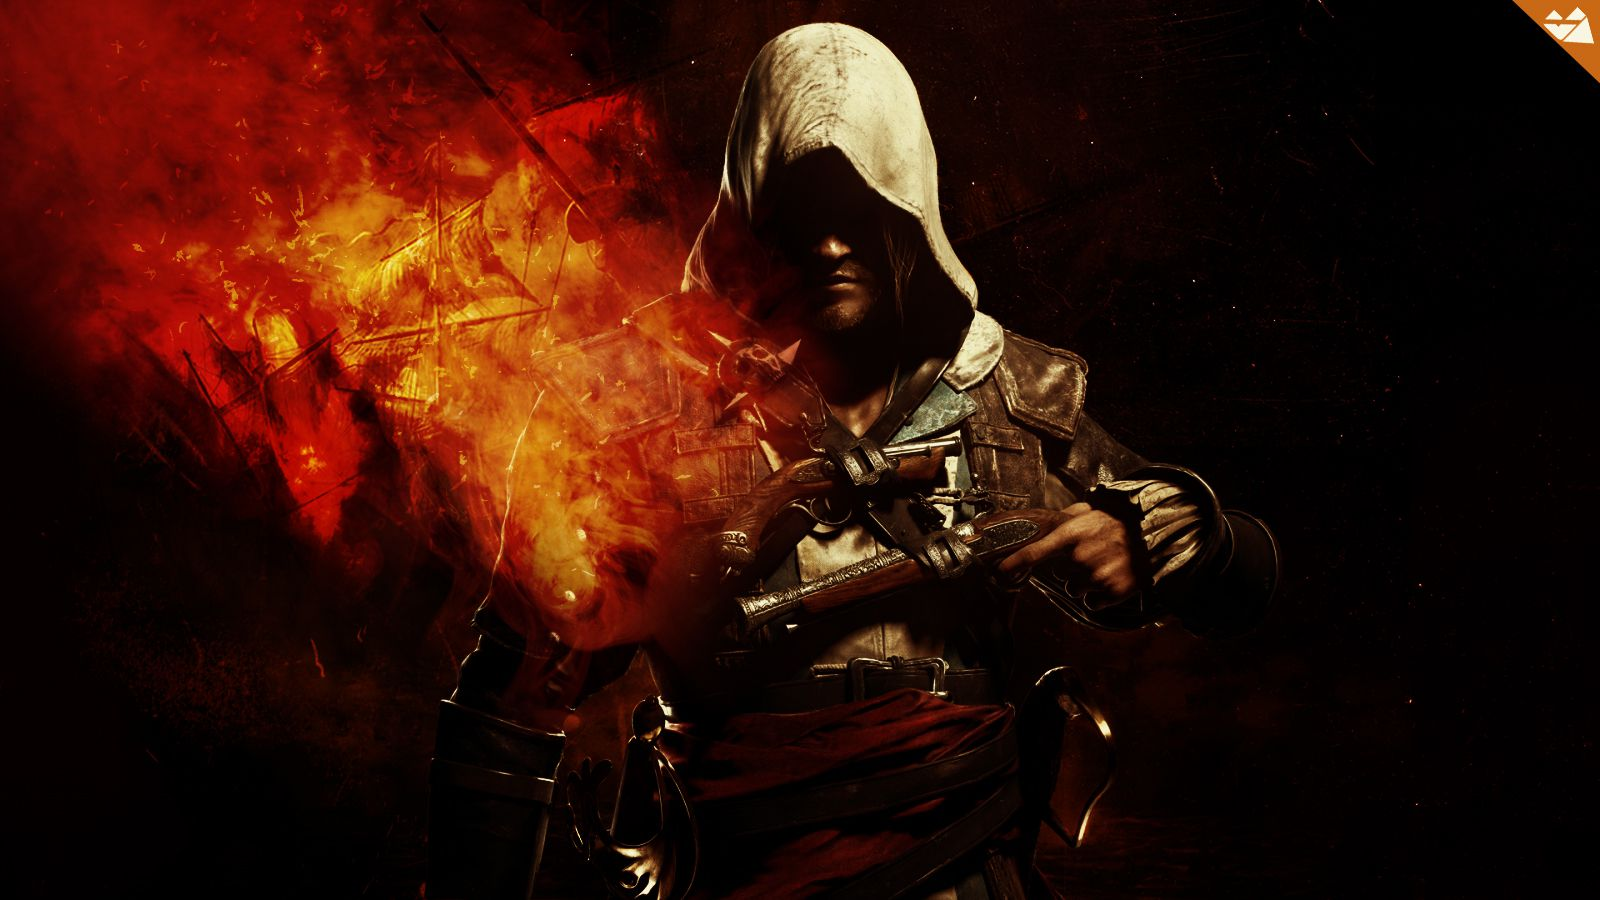 Assassins Creed Black Flag 4 Game HD Wallpaper Search more Games high 1600x900